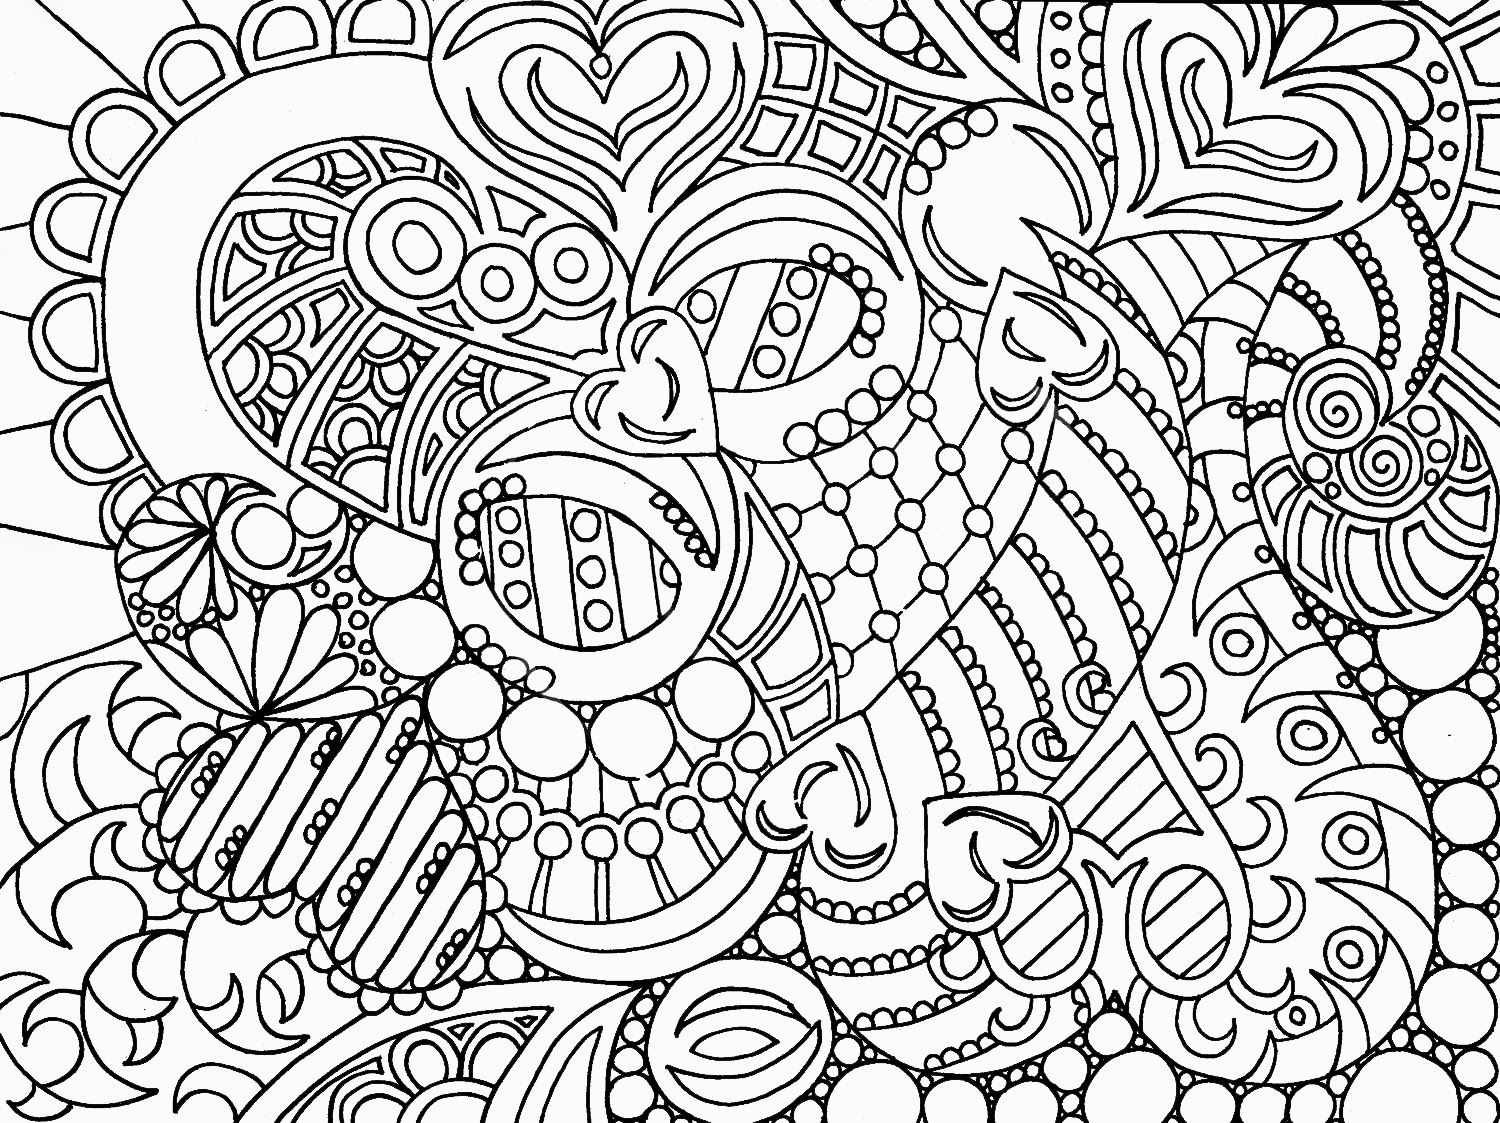 1500x1123 Coloring Pages Abstract Designs